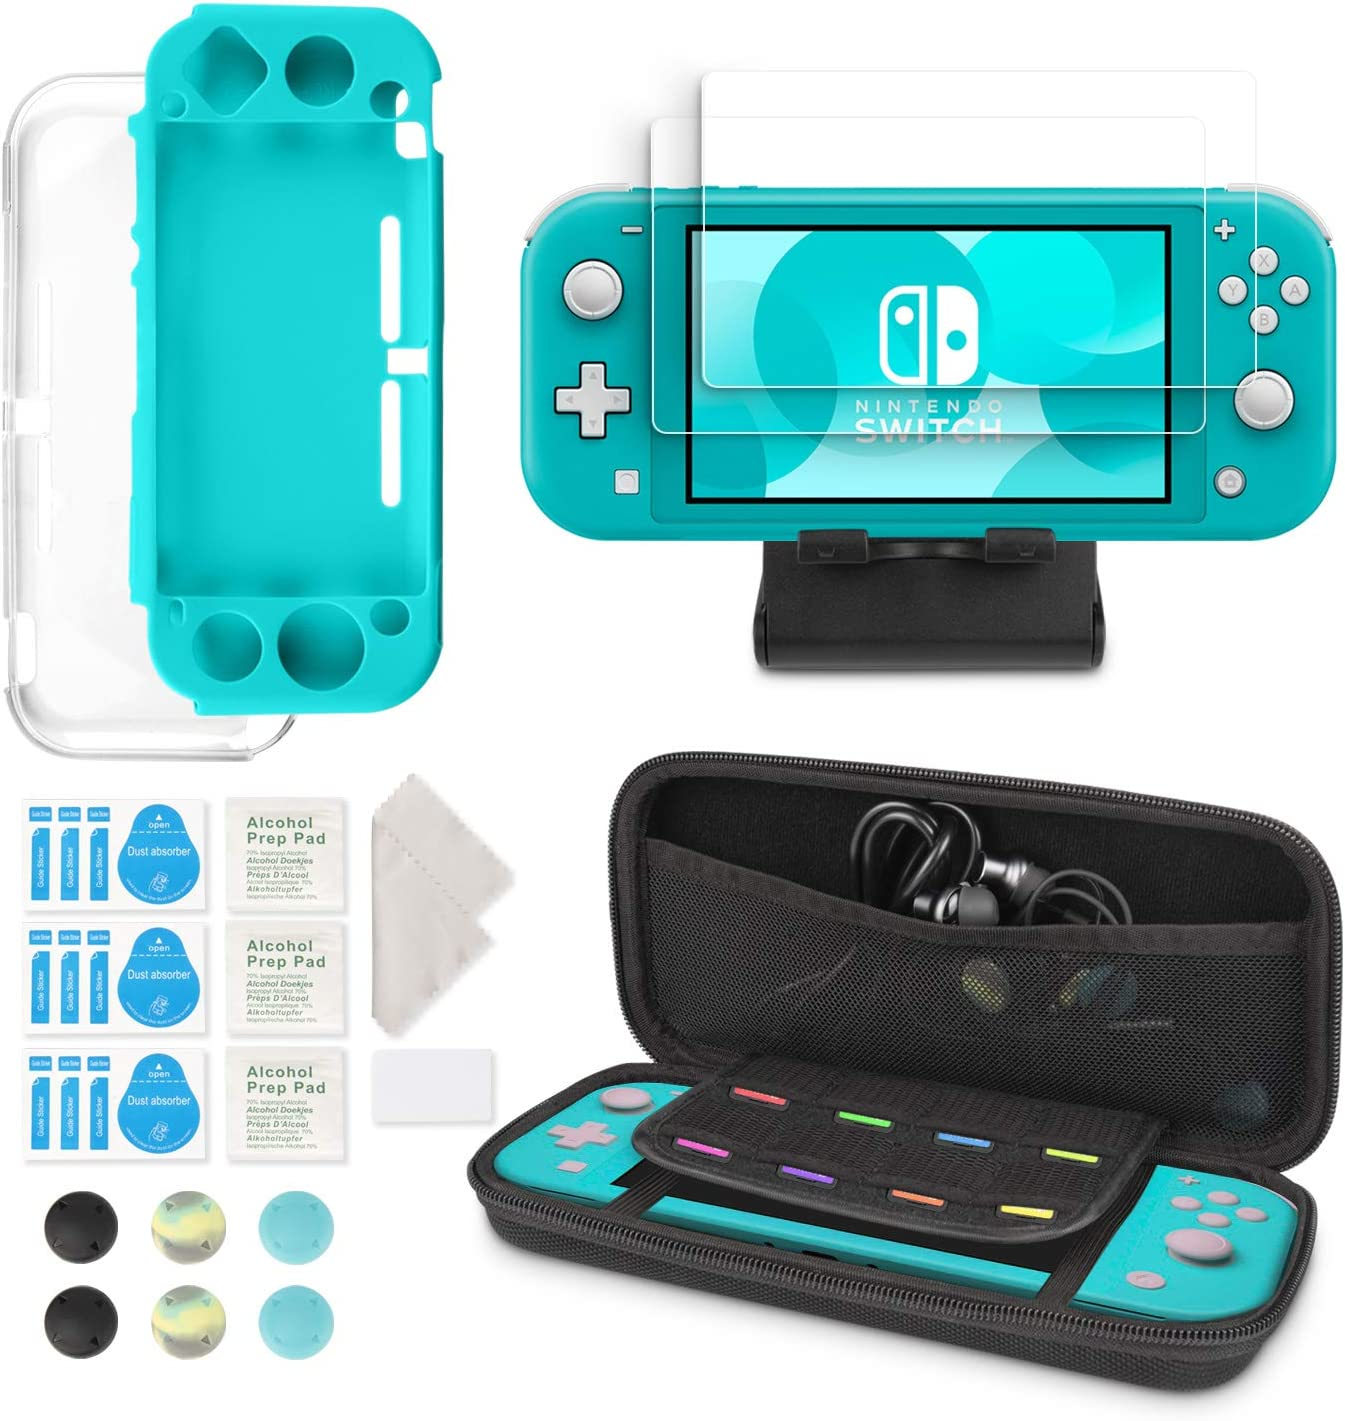 Kit 6 en 1 de Accesorios para Nintendo Switch Lite: Amazon.es: Electrónica